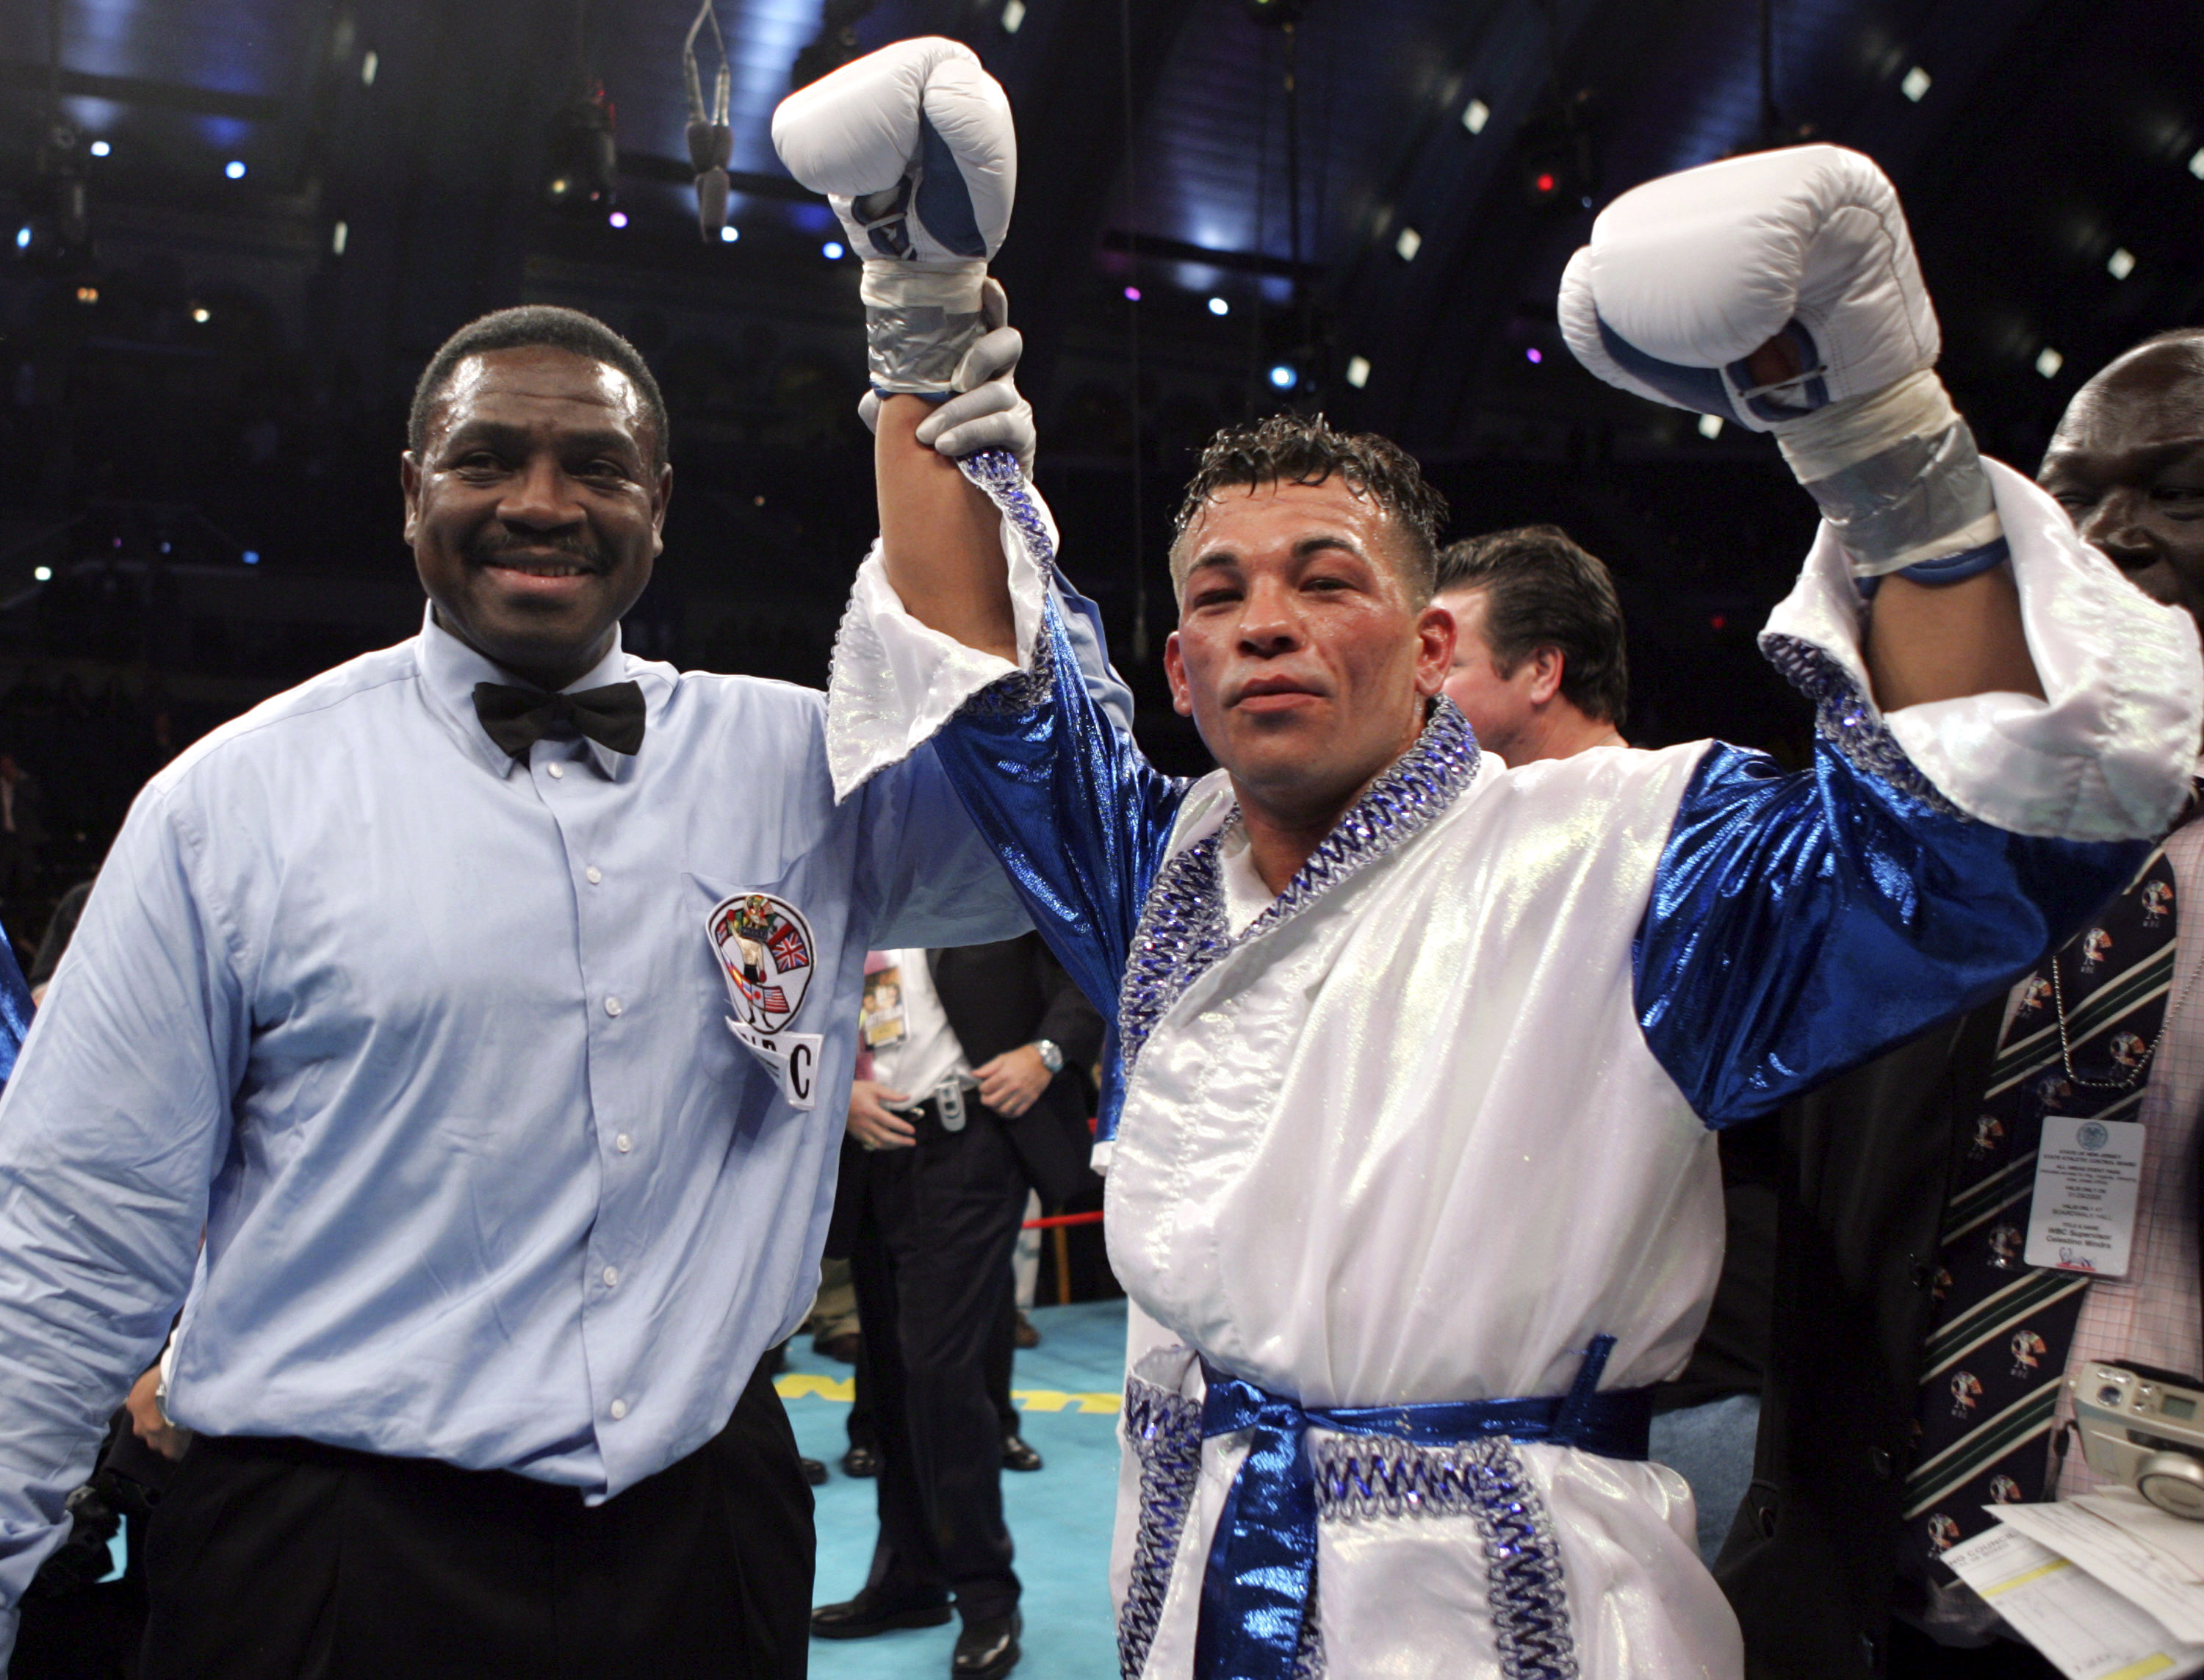 The Mysterious Death of Boxer Arturo Gatti Leaves More Questions Than Answers